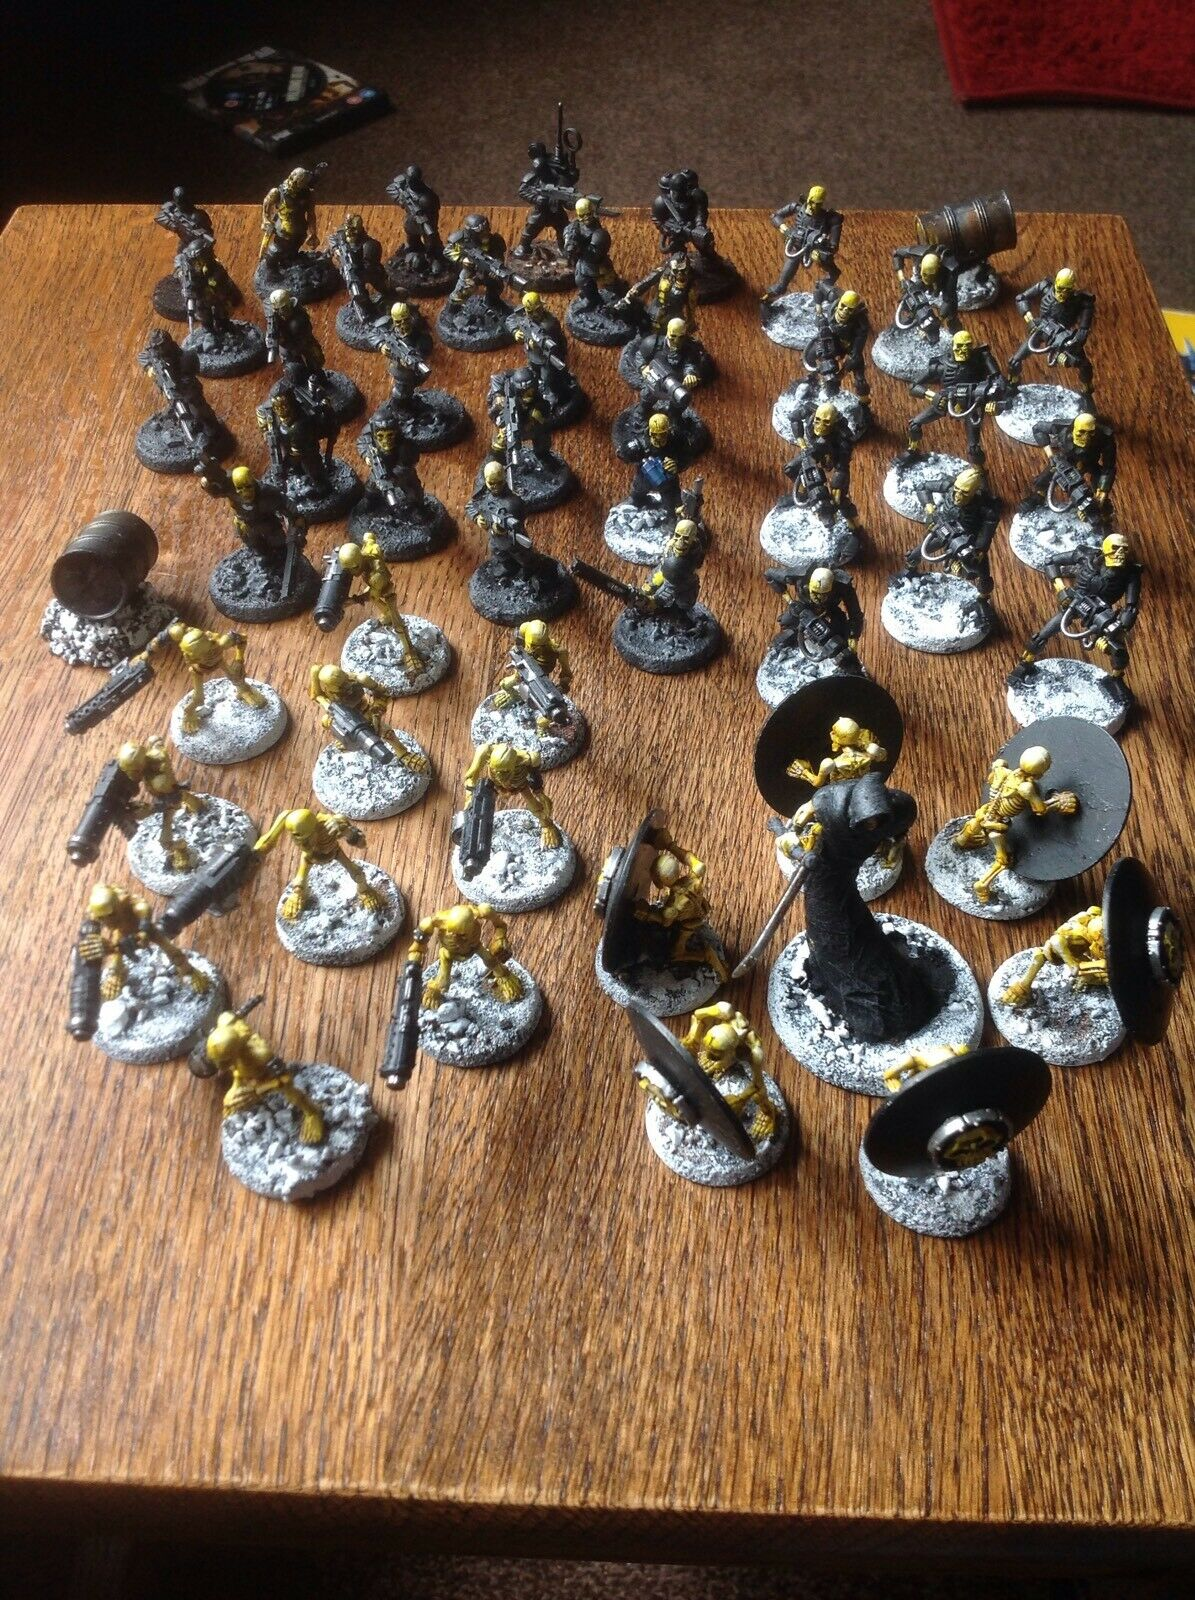 Warhammer 40k Imperial Guard Chaos Plague Zombies Army Skeletons Poxwalkers